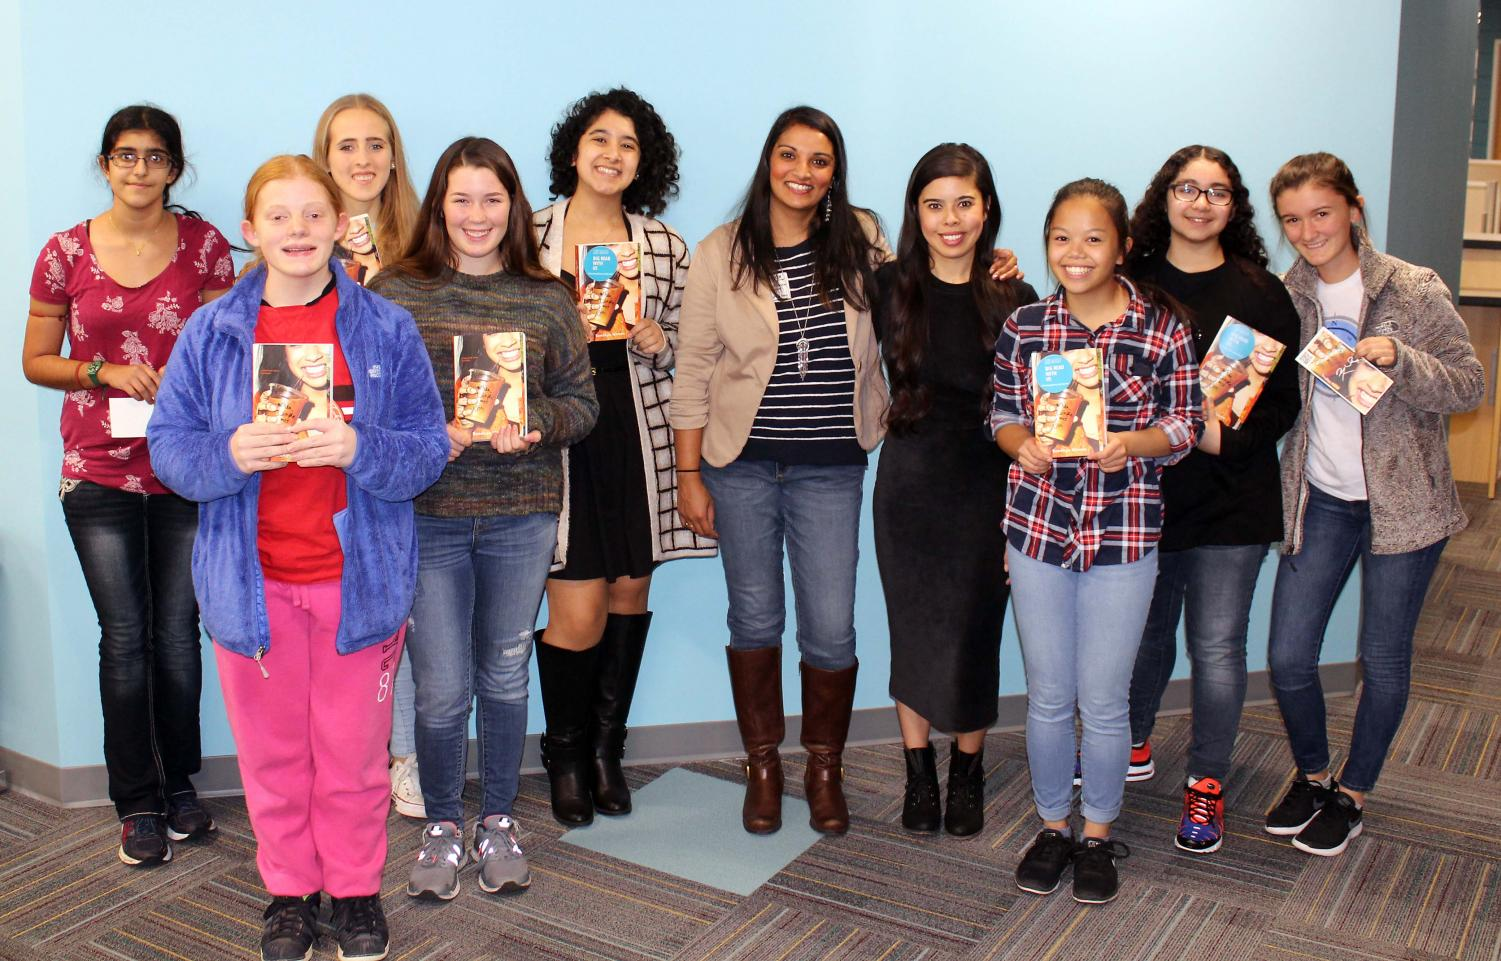 Members of the Reading Club pose for a photo with Sandhya Menon during her visit to SHS.